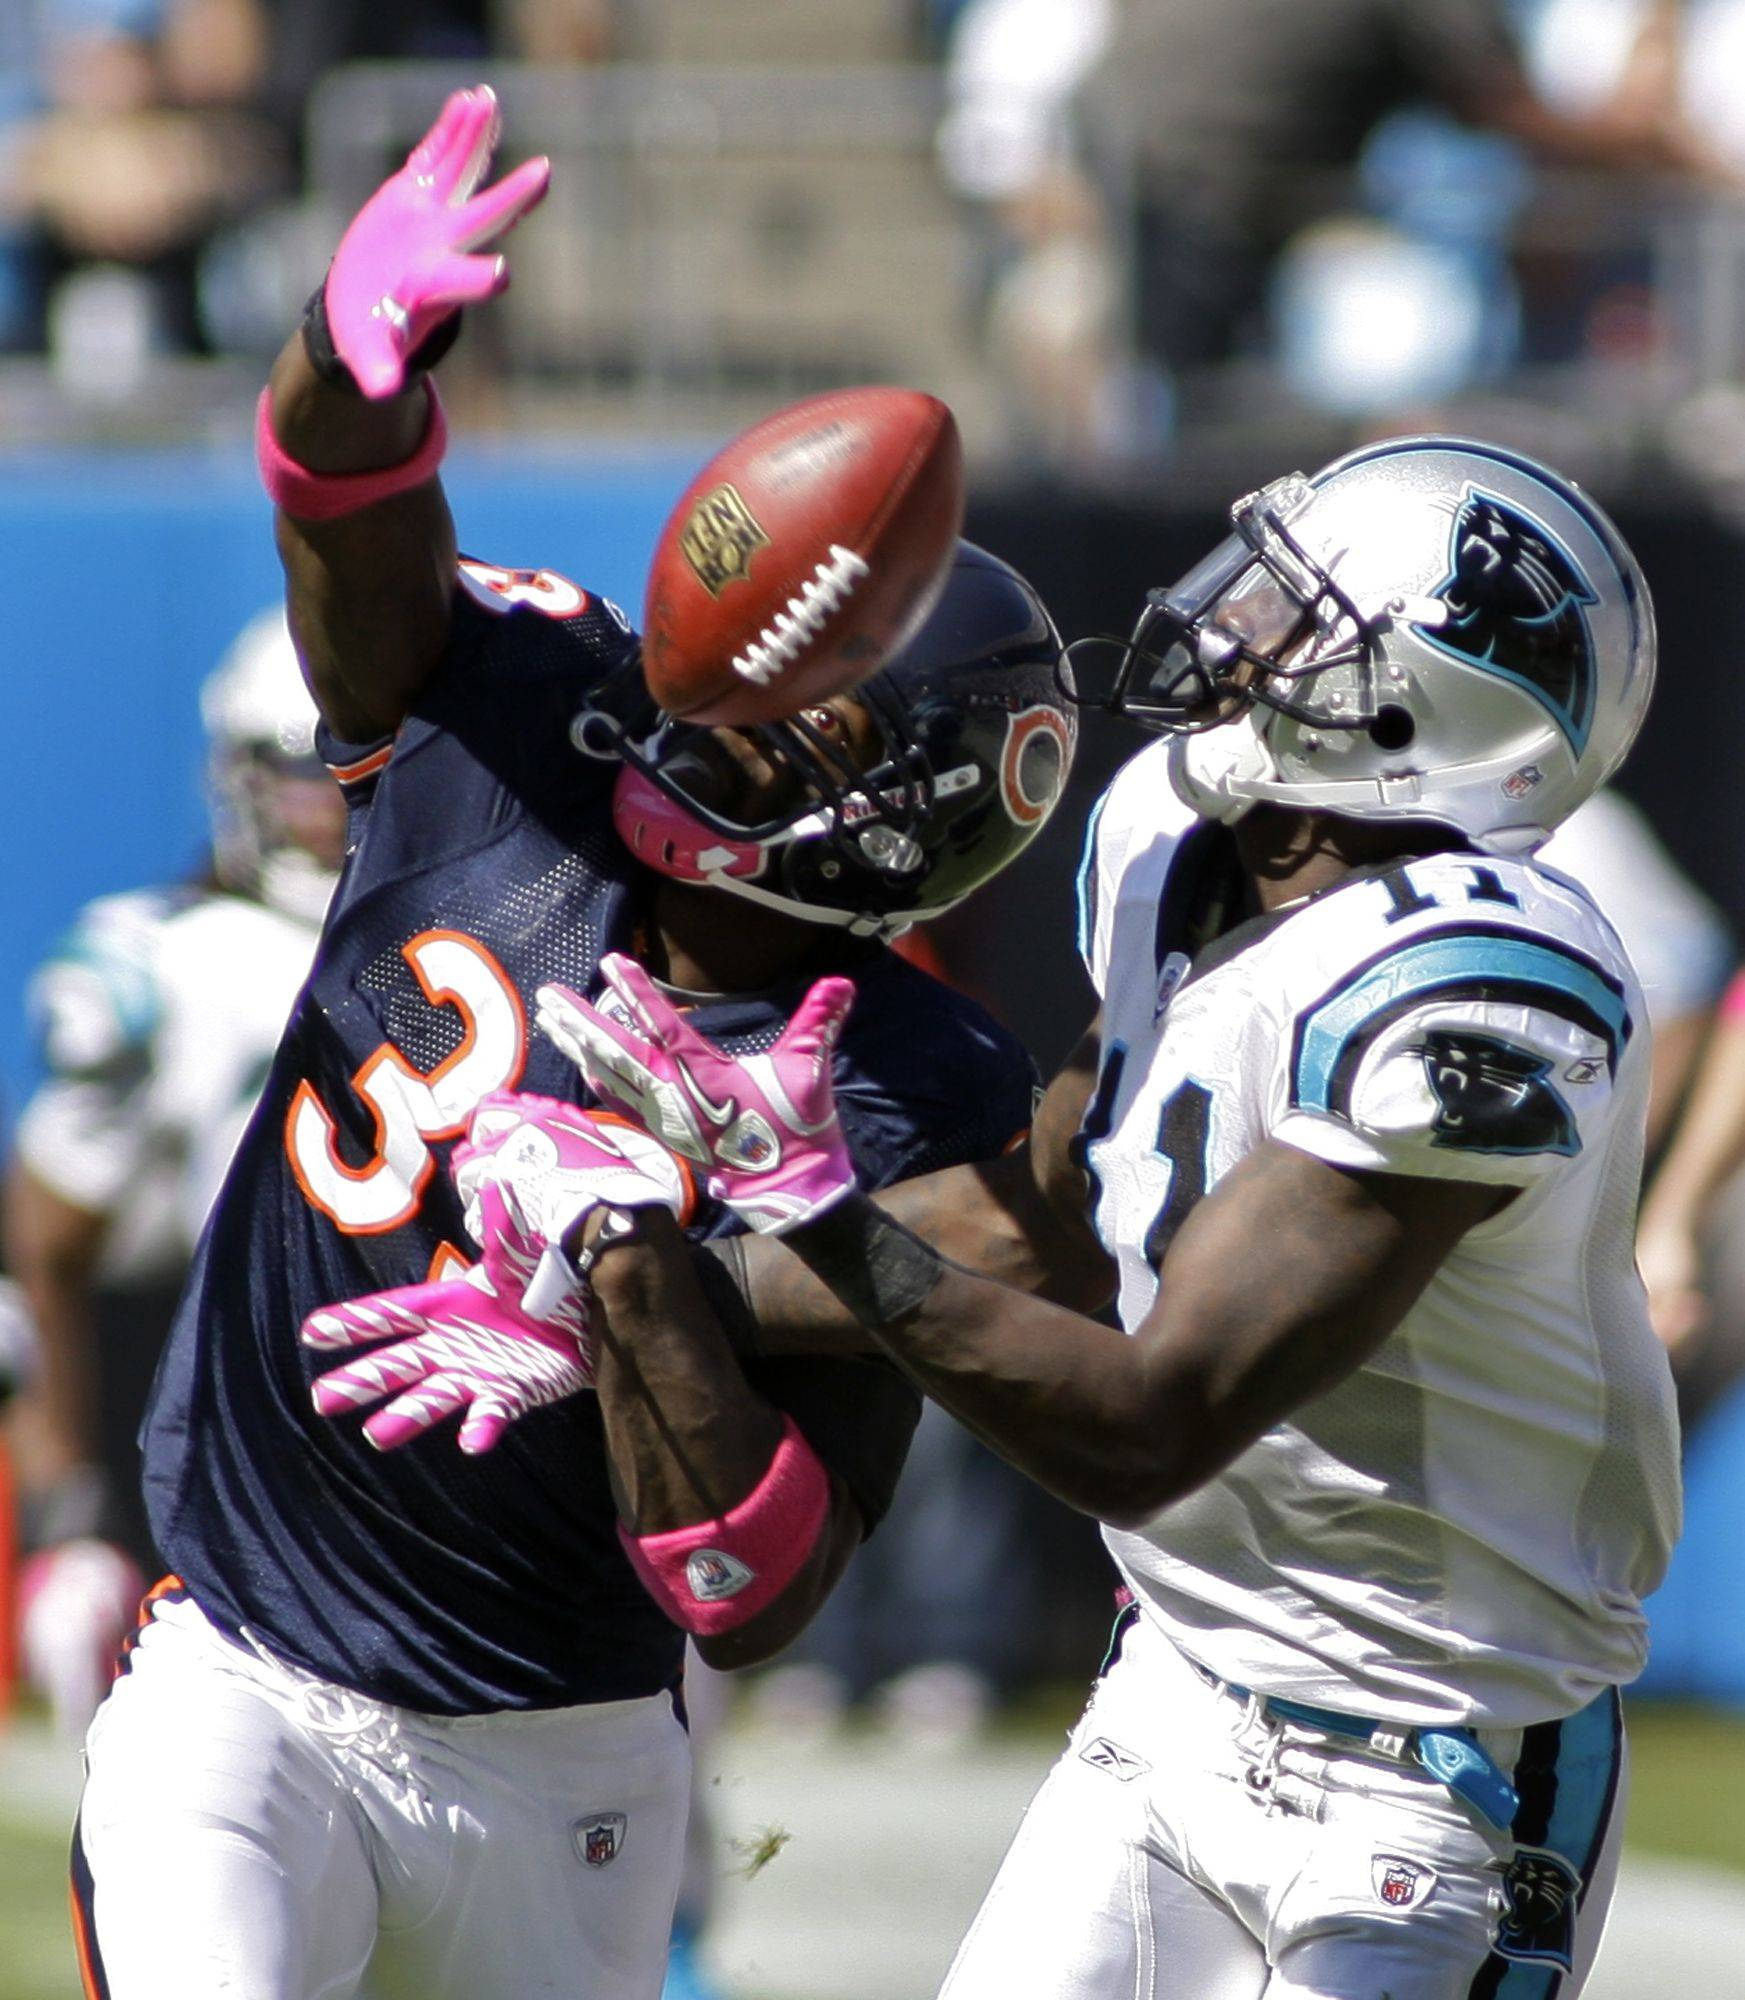 Carolina Panthers' Brandon LaFell battles Chicago Bears' Charles Tillman for a catch in the first half.